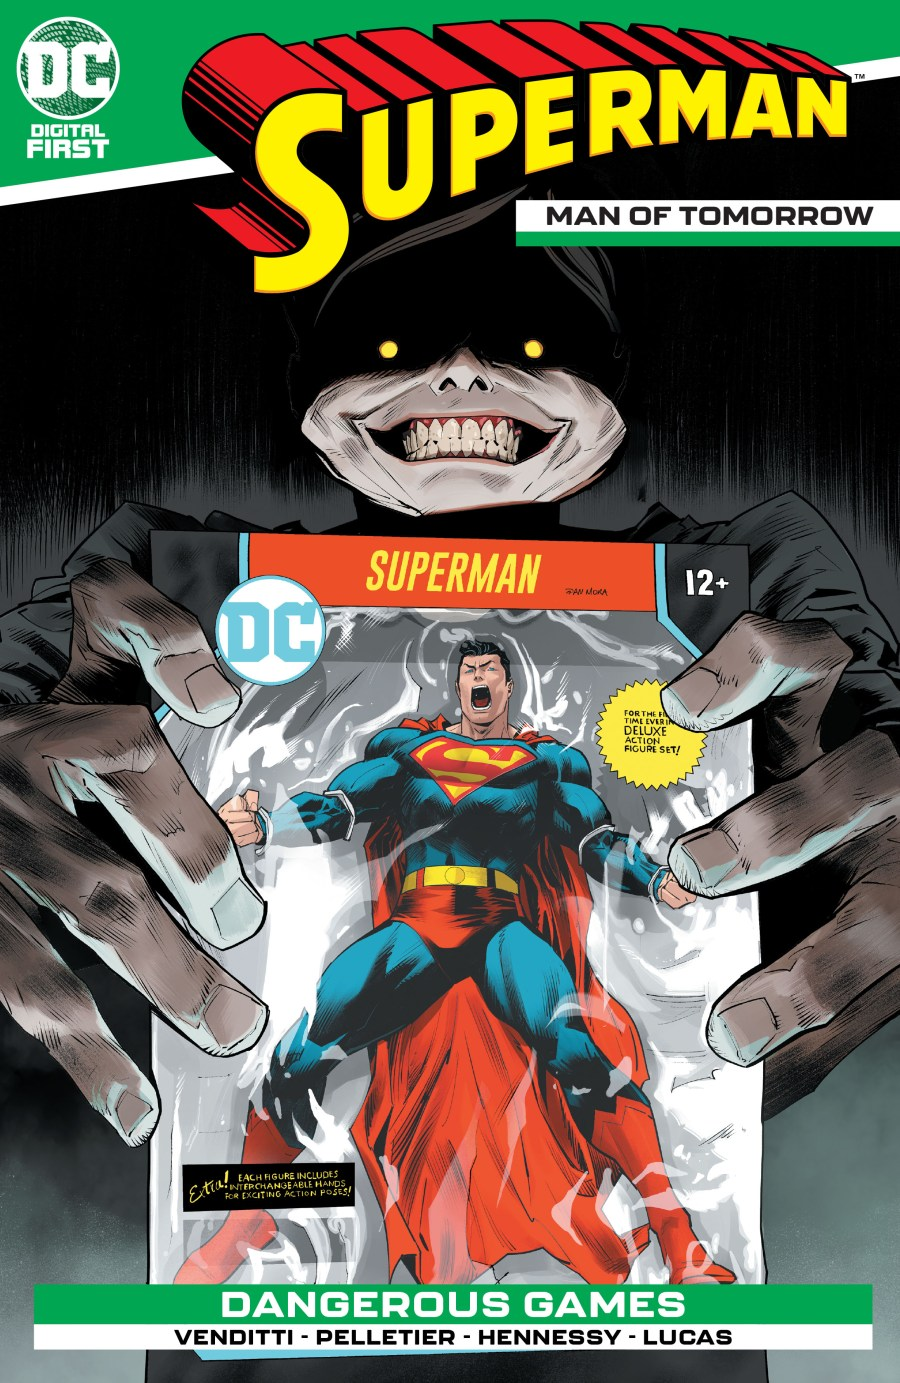 Superman: Man of Tomorrow #3